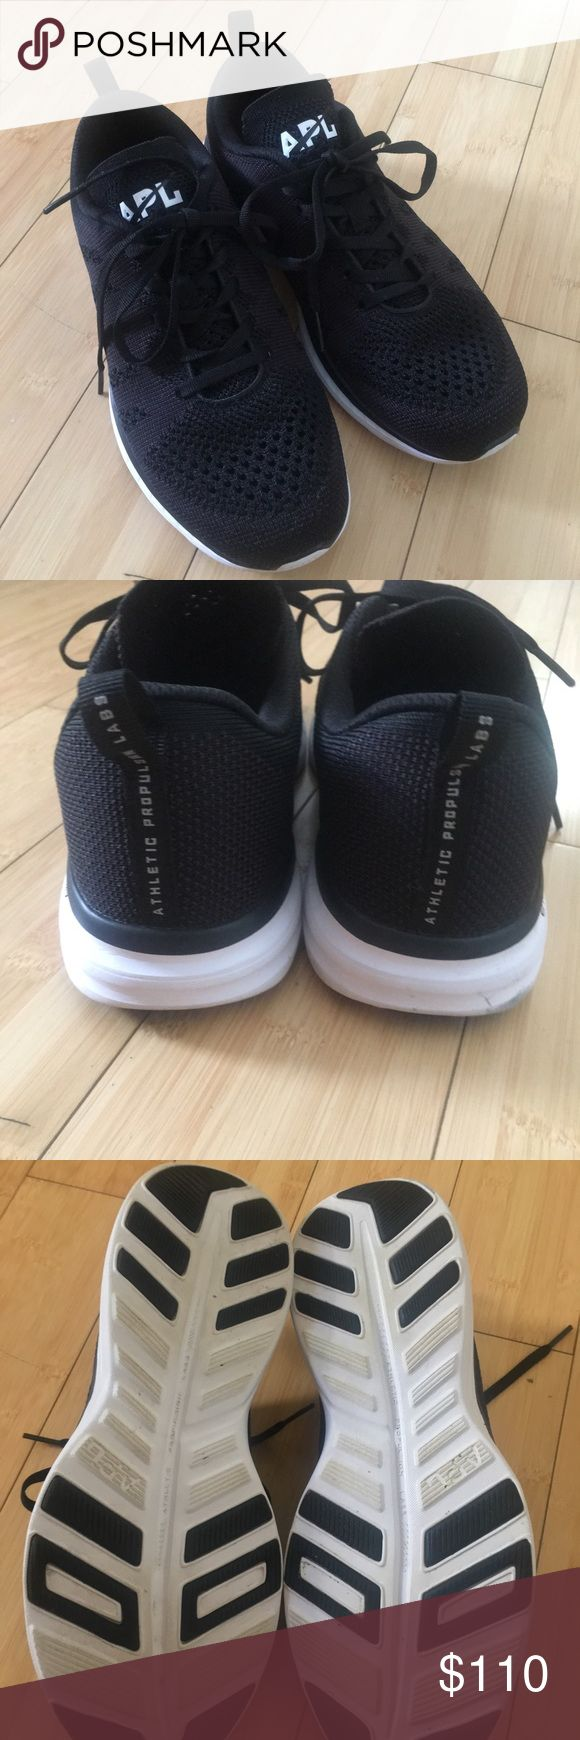 Popular APL sneakers Adorable black and white APL sneakers as seen worn by celebrities. Excellent condition worn once just not the right size for me. See pics for wear. Includes second set of black shiny laces. apl Shoes Sneakers